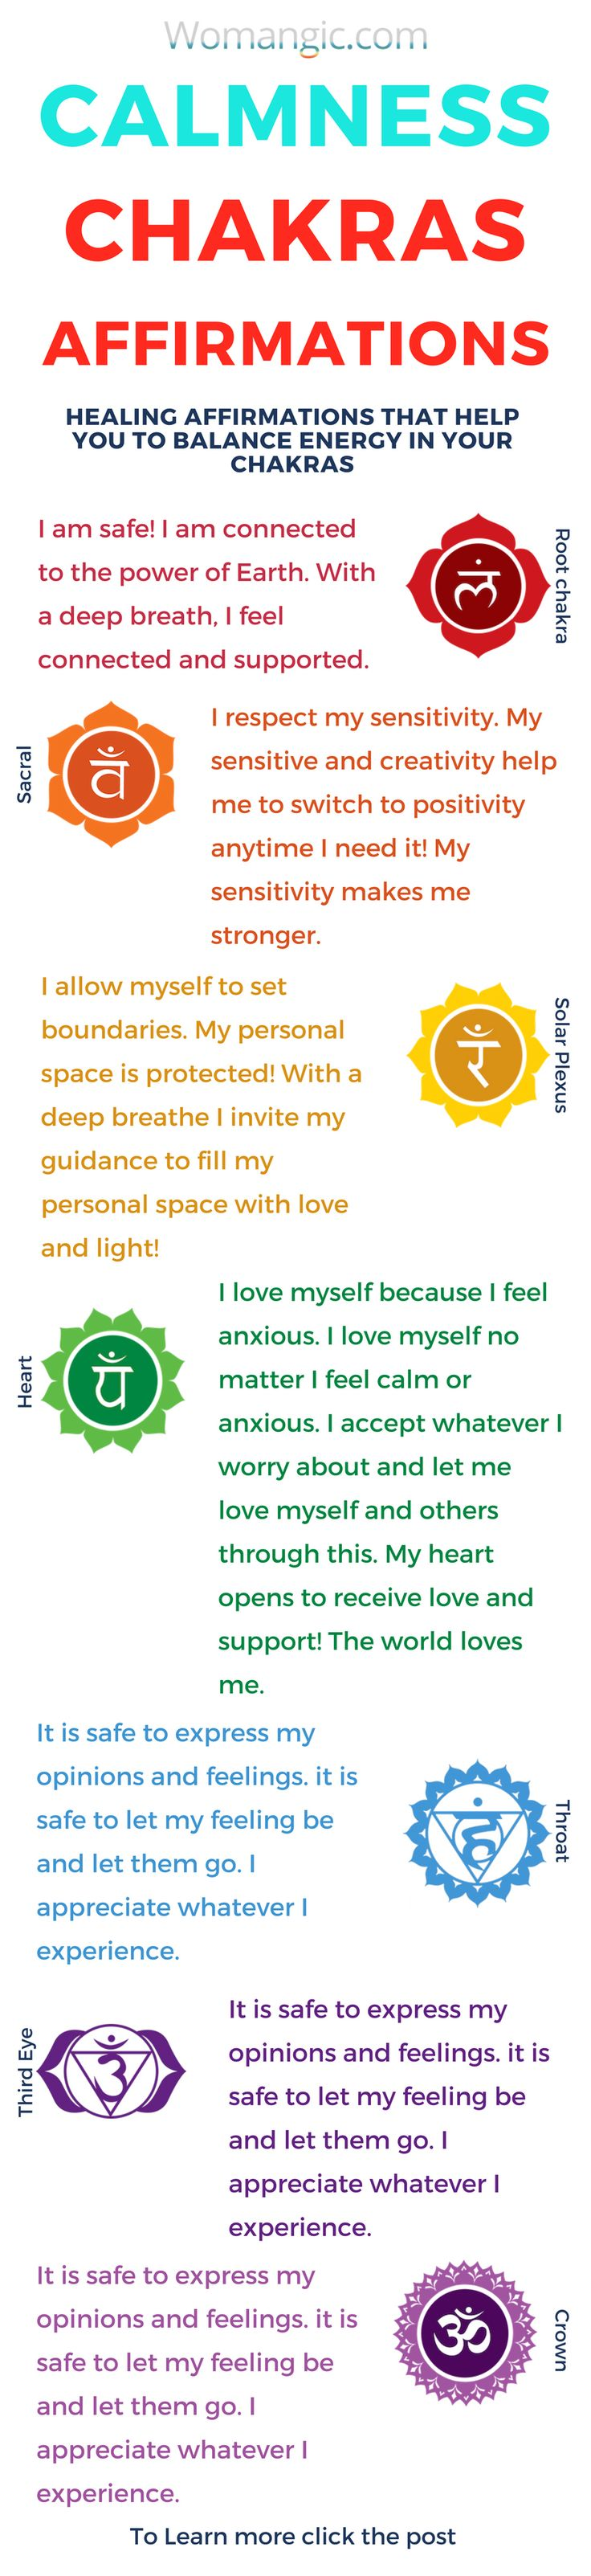 Affirmations to feel calmer, How to work with your chakras with affirmations. Chakra, Chakra Balancing, Root, Sacral, Solar Plexus, Heart, Throat, Third Eye, Crown, Chakra meaning, Chakra affirmation, Chakra Mantra, Chakra Energy, Energy, Chakra articles, Chakra Healing, Chakra Cleanse, Chakra Illustration, Chakra Base, Chakra Images, Chakra Signification, Anxiety, Anxiety Relief, Anxiety Help, Anxiety Social, Anxiety Overcoming, Anxiety Attack.Meditation | Guided Mediation | Meditation…